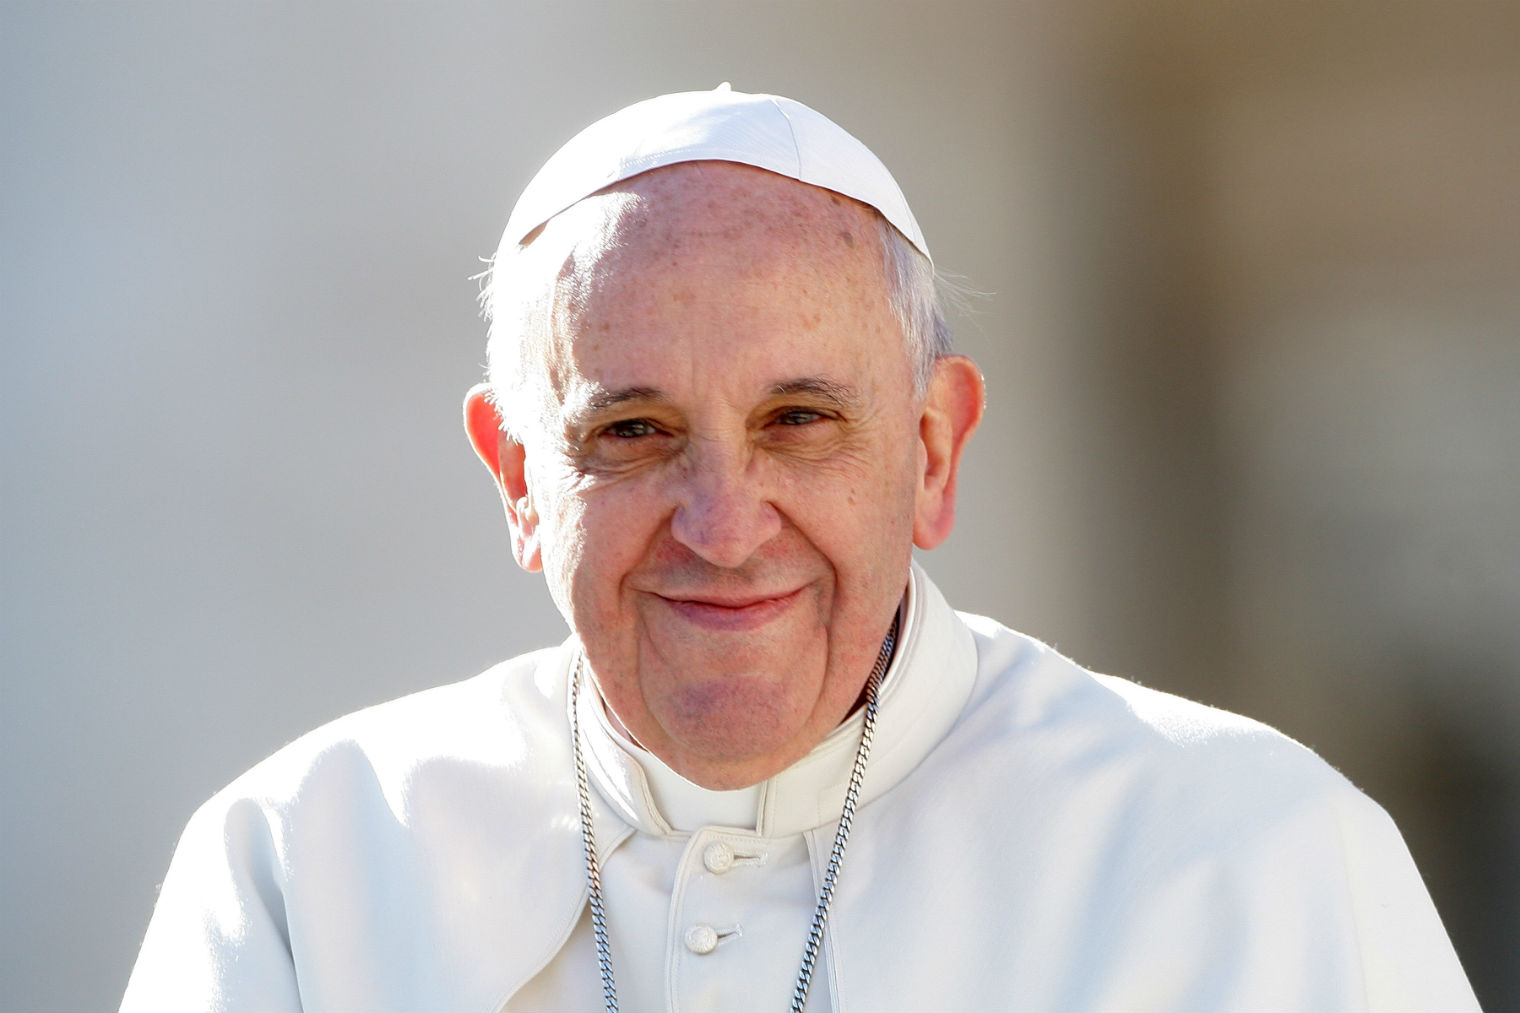 Pope Francis Wants The Lord's Prayer To Be Altered